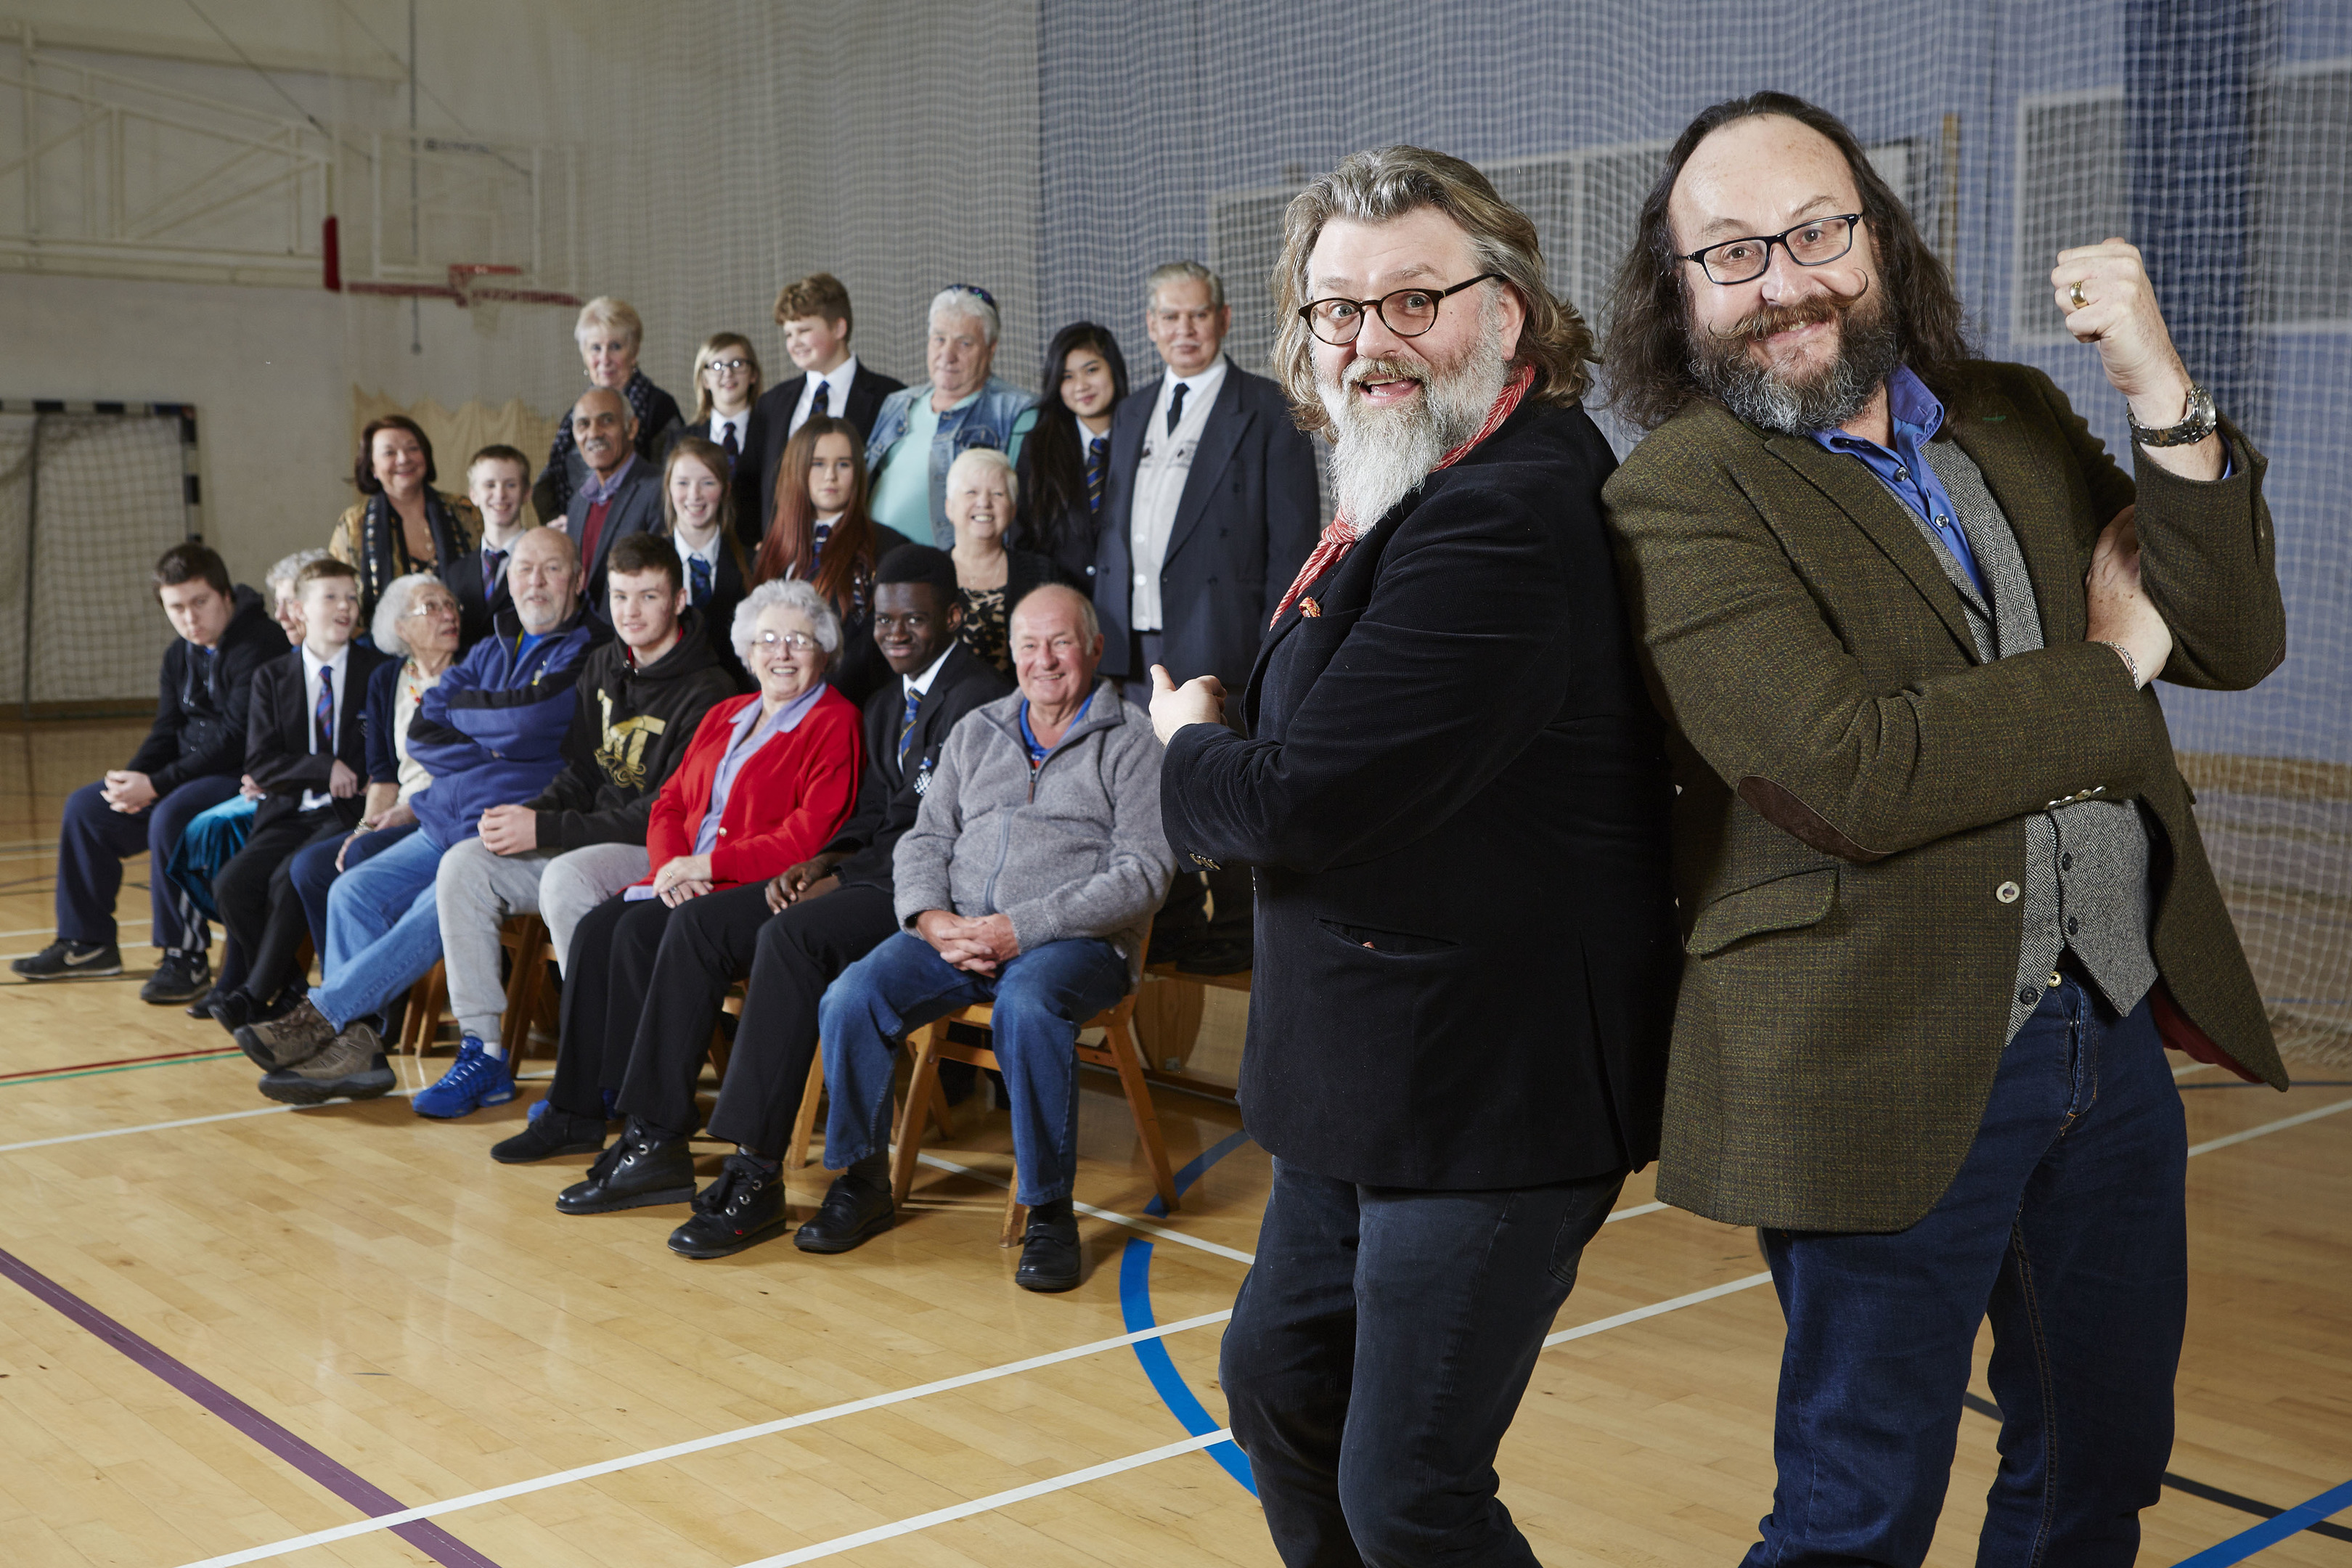 Old School with The Hairy Bikers (BBC/Maverick Television/Matt Frost)